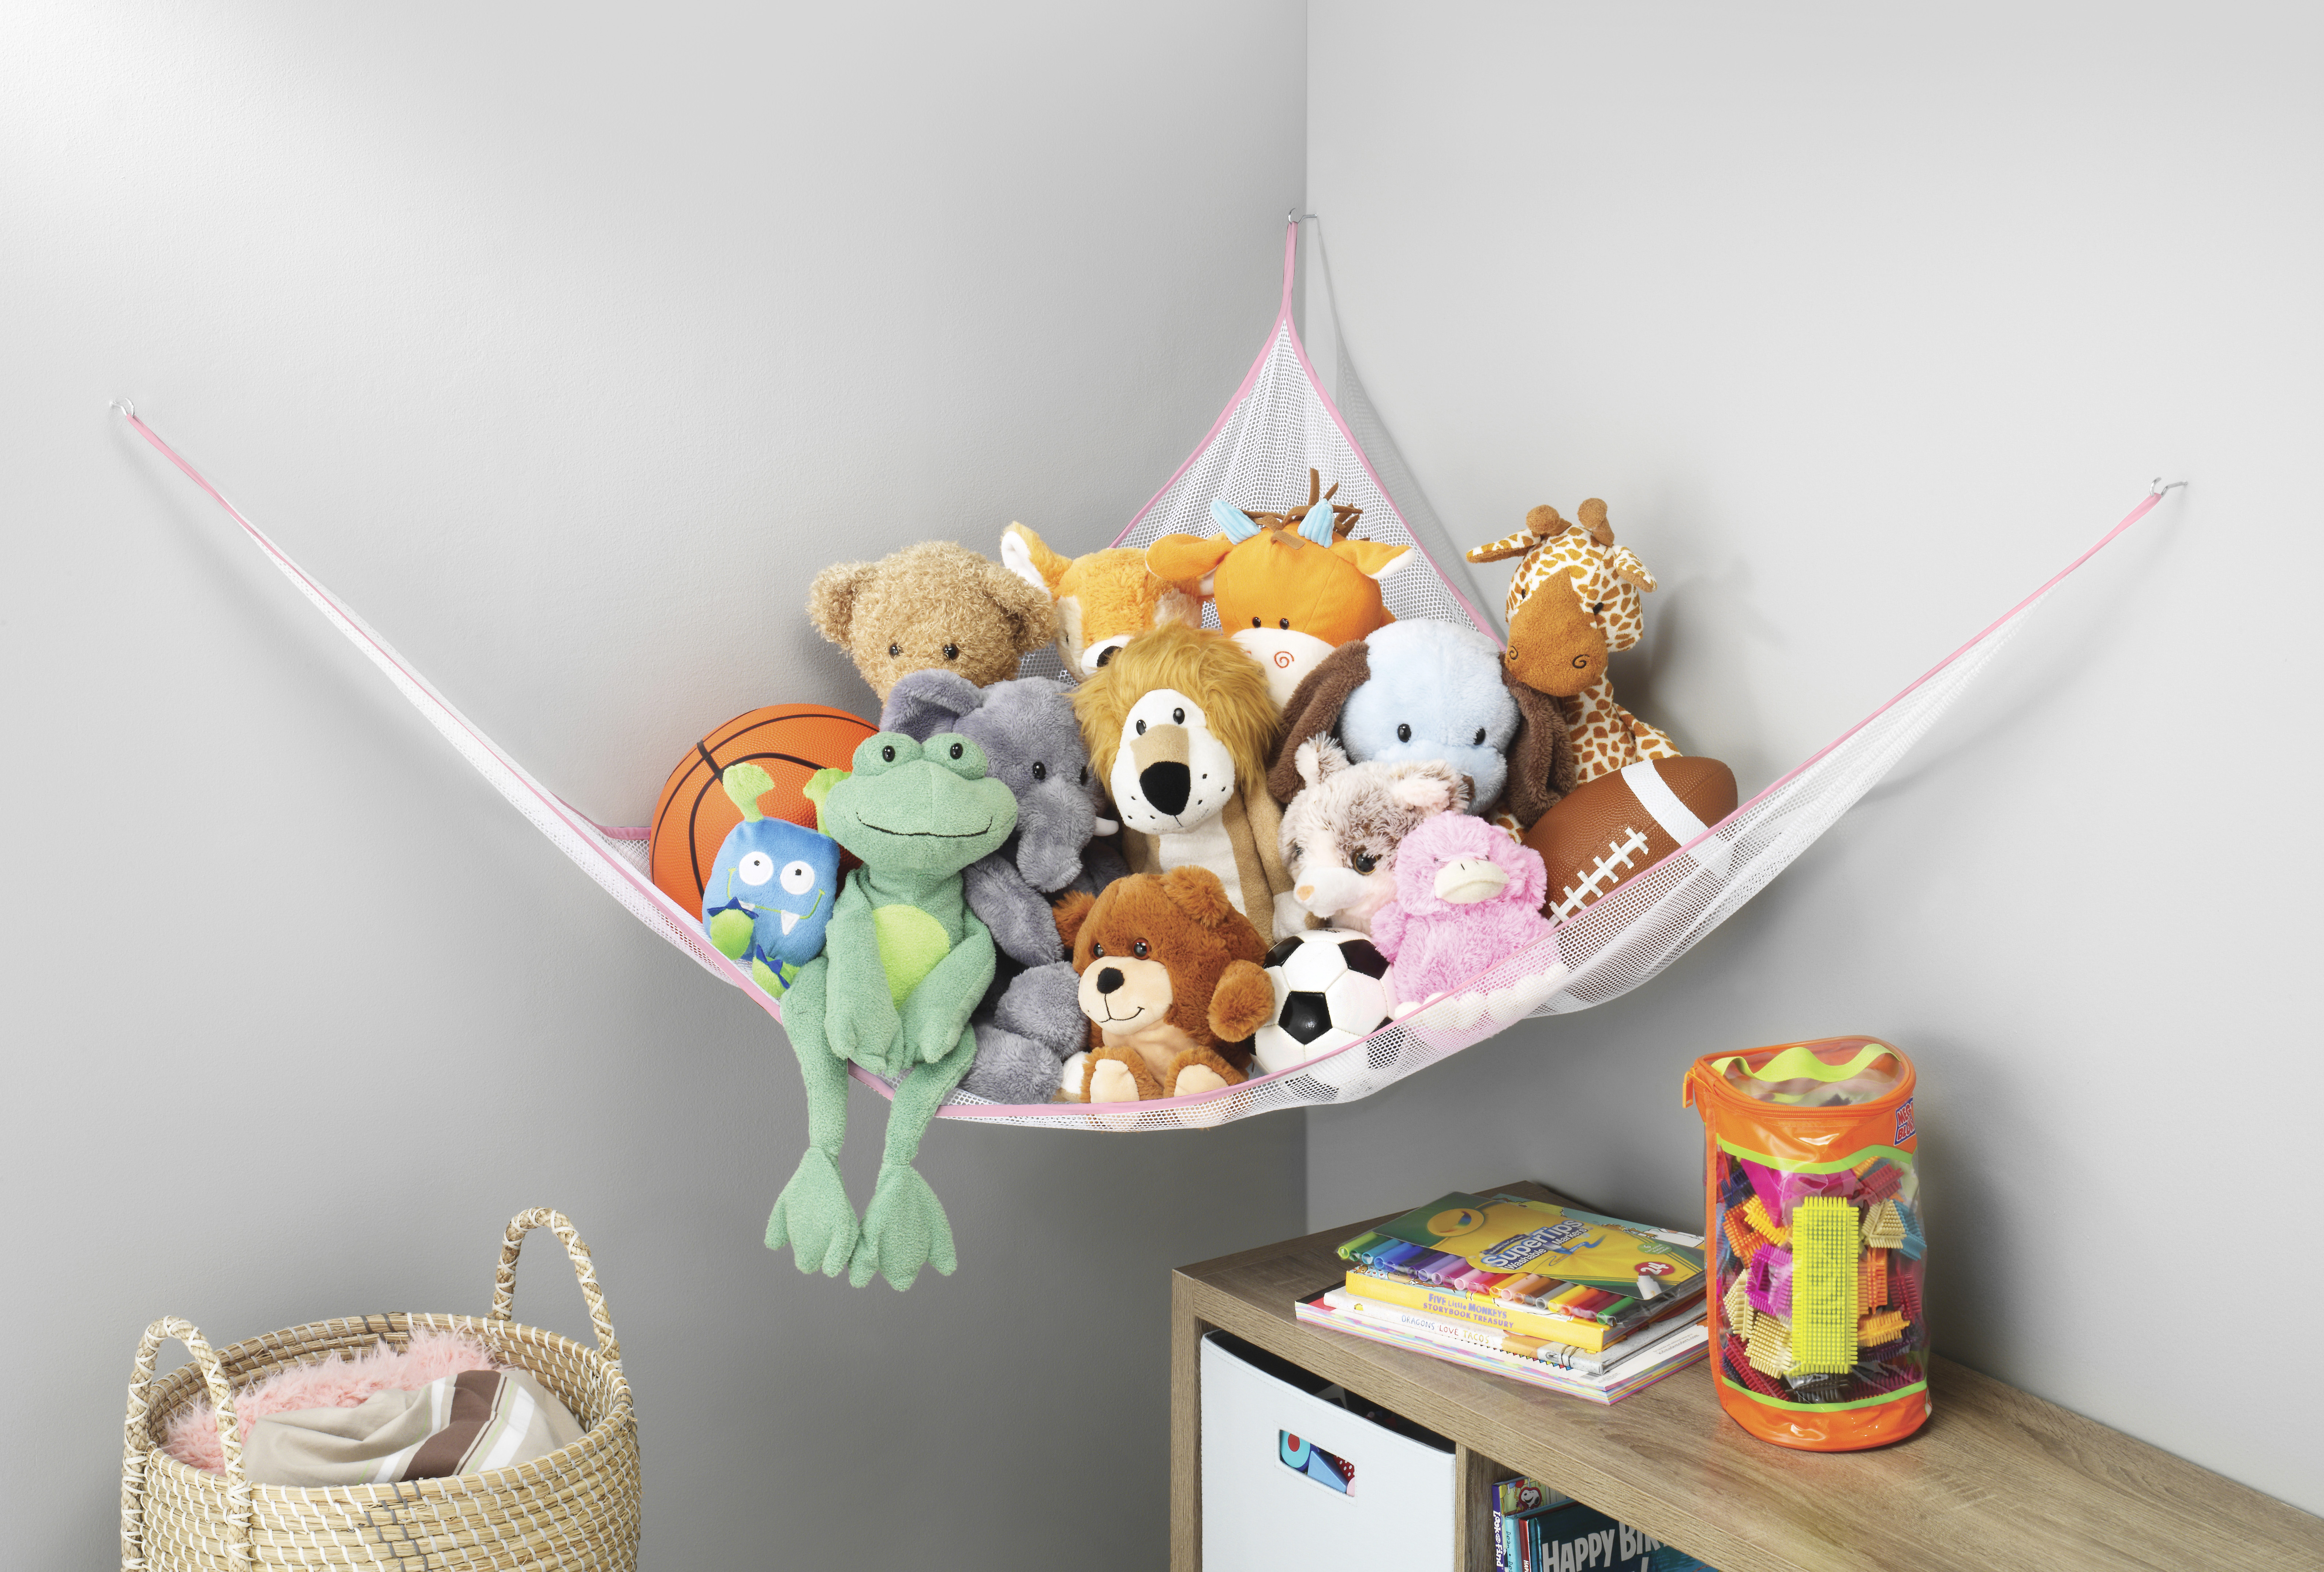 Whitmor Jumbo Toy Hammock Net Organize Stuffed Animals and Kids Bath ...